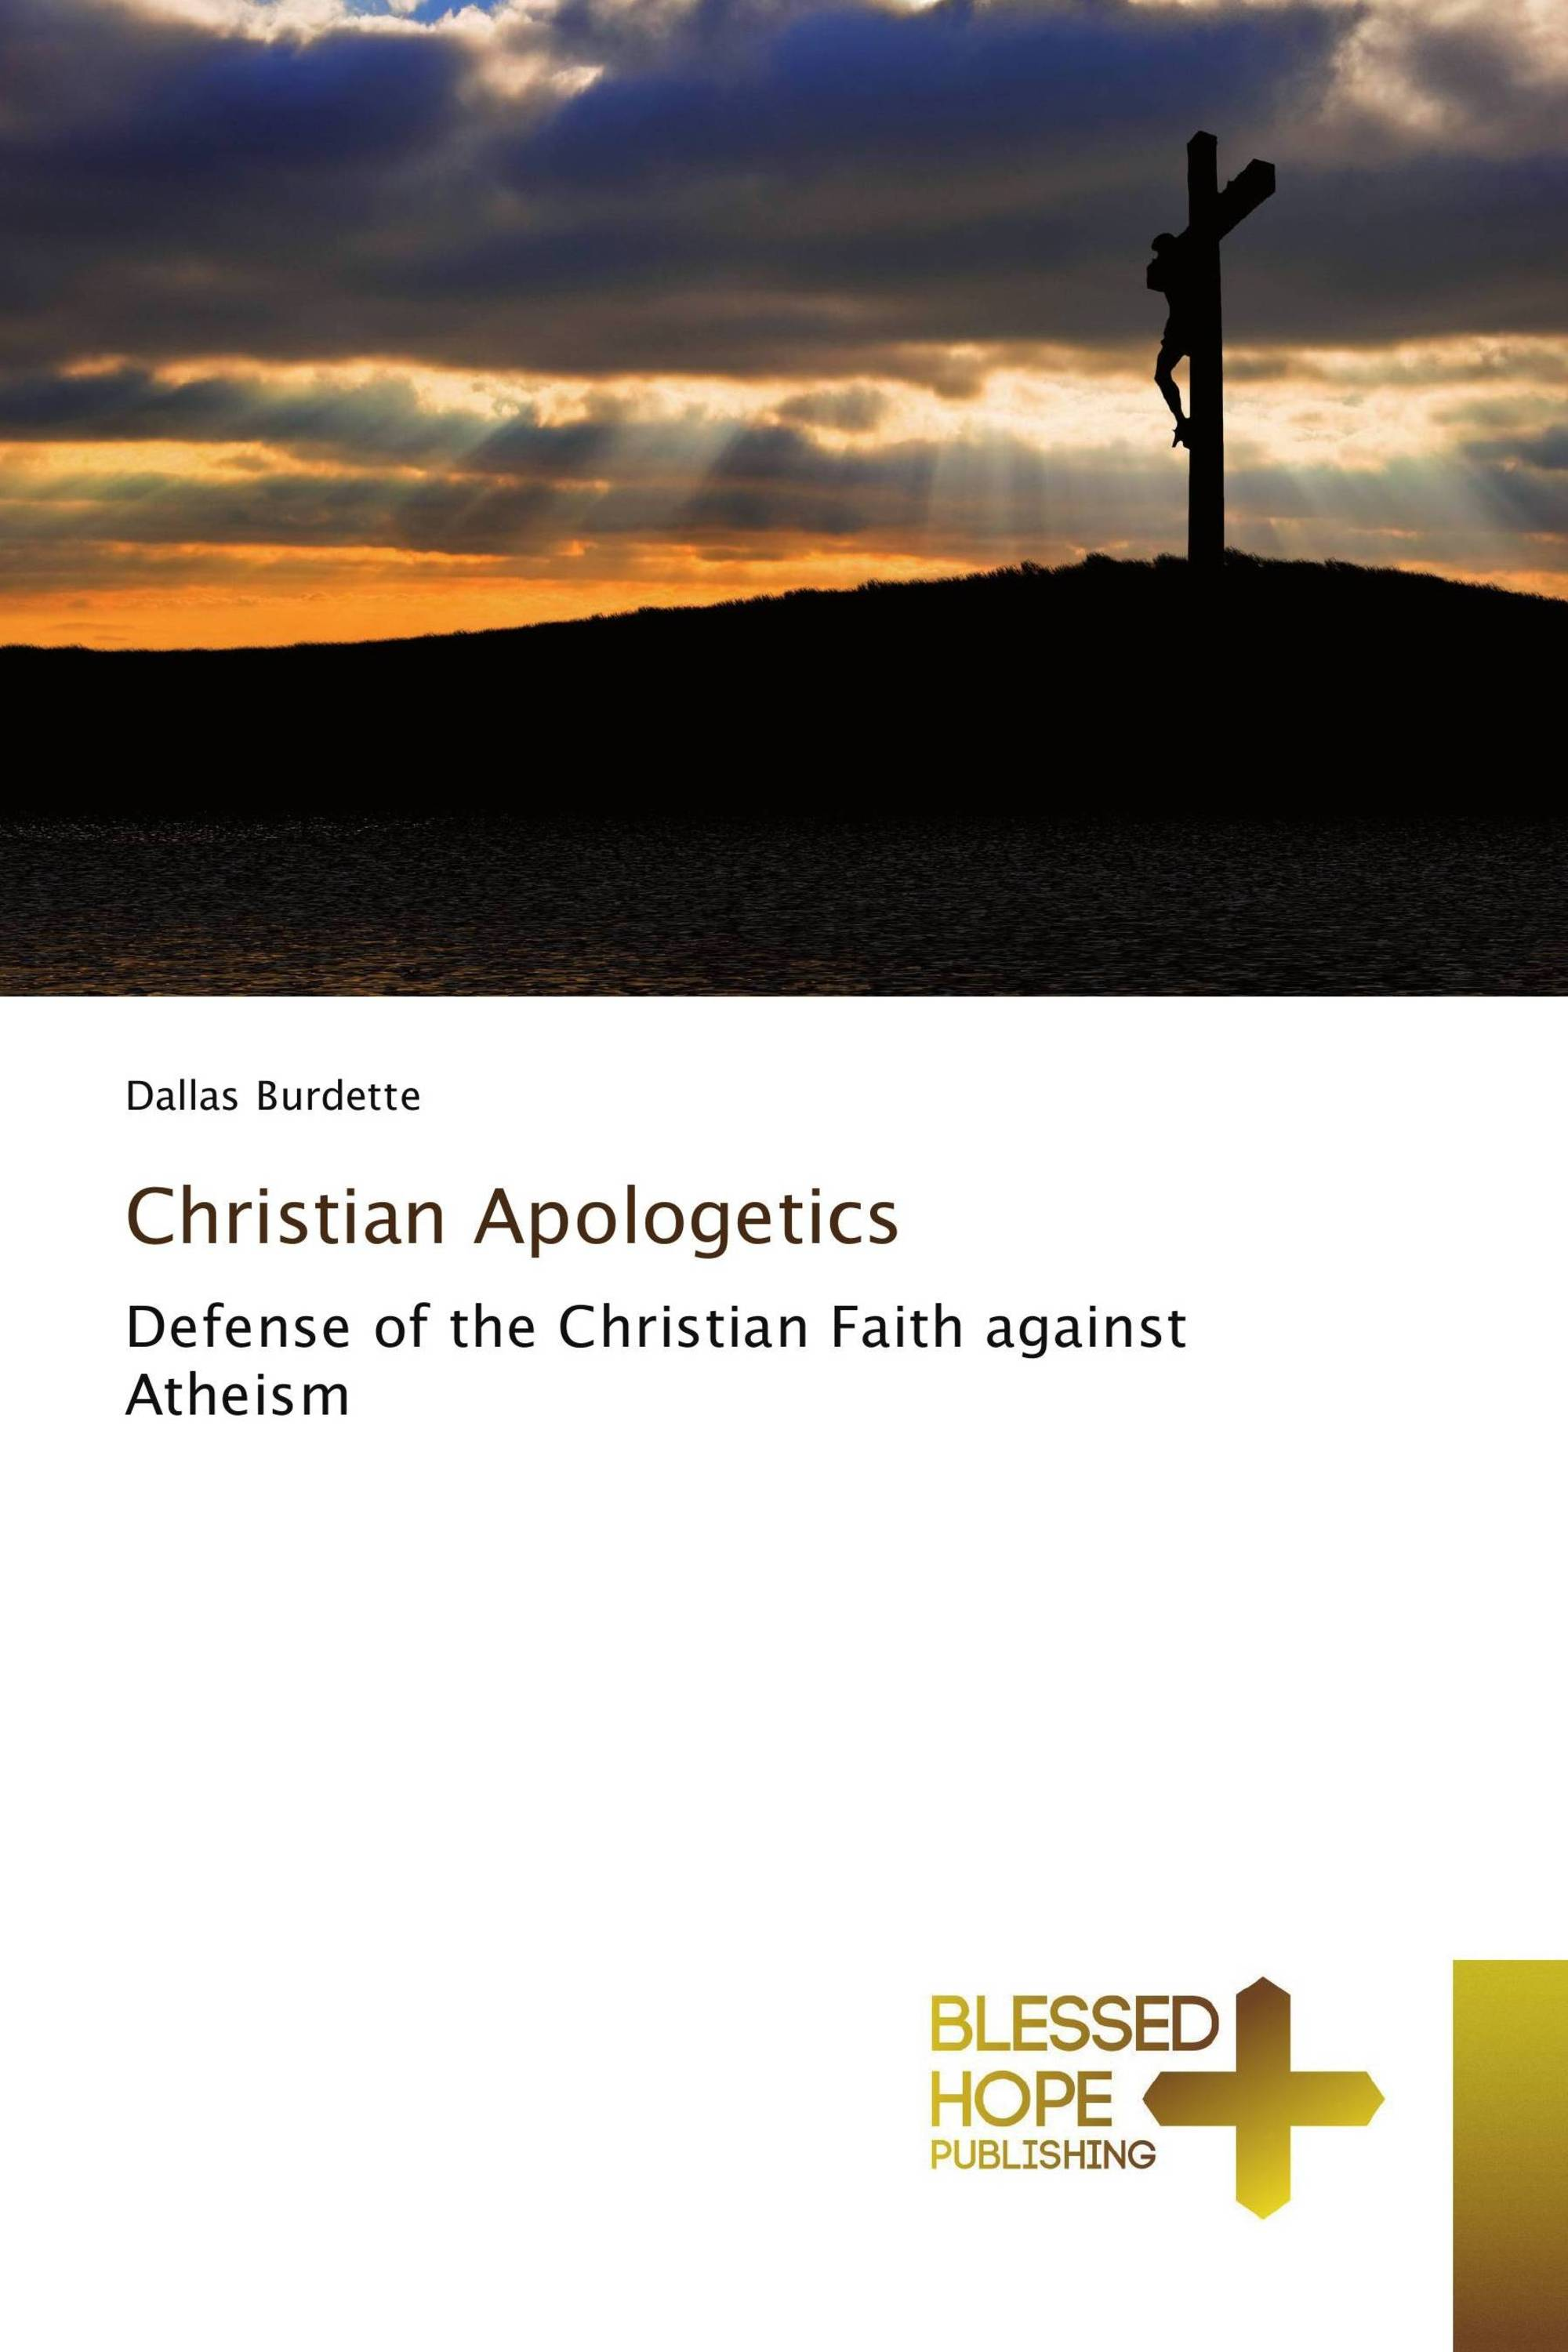 the christian apologetics and the meaning of jesus Jesus' teaching, as well as the history of apologetics, argues against this kind of fideism (faith against or without objective evidence) that millet wrongly associates with christianity and rightly associates with mormonism.